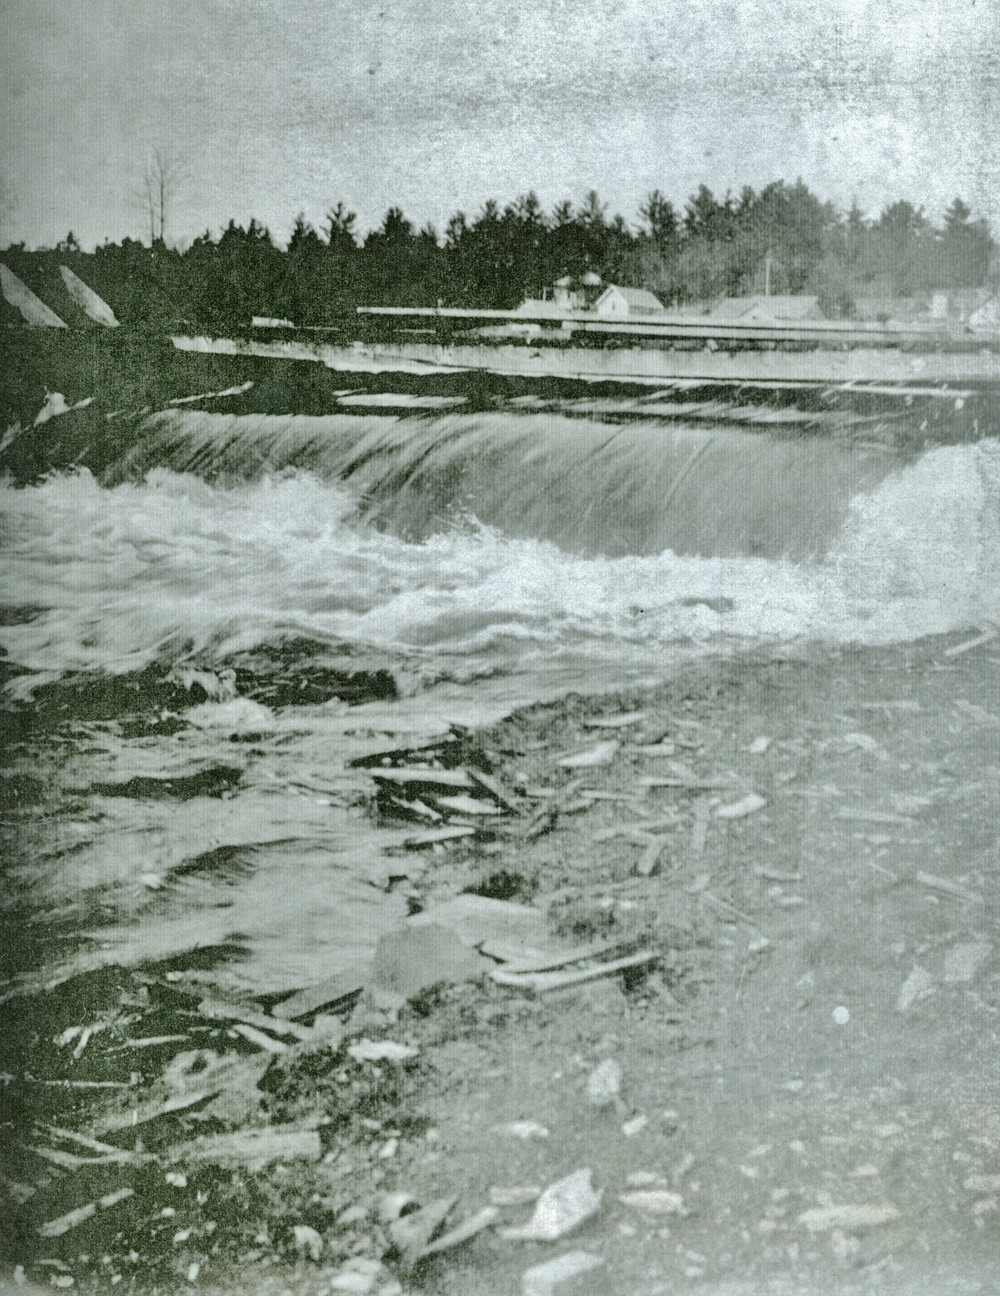 Old position of dam